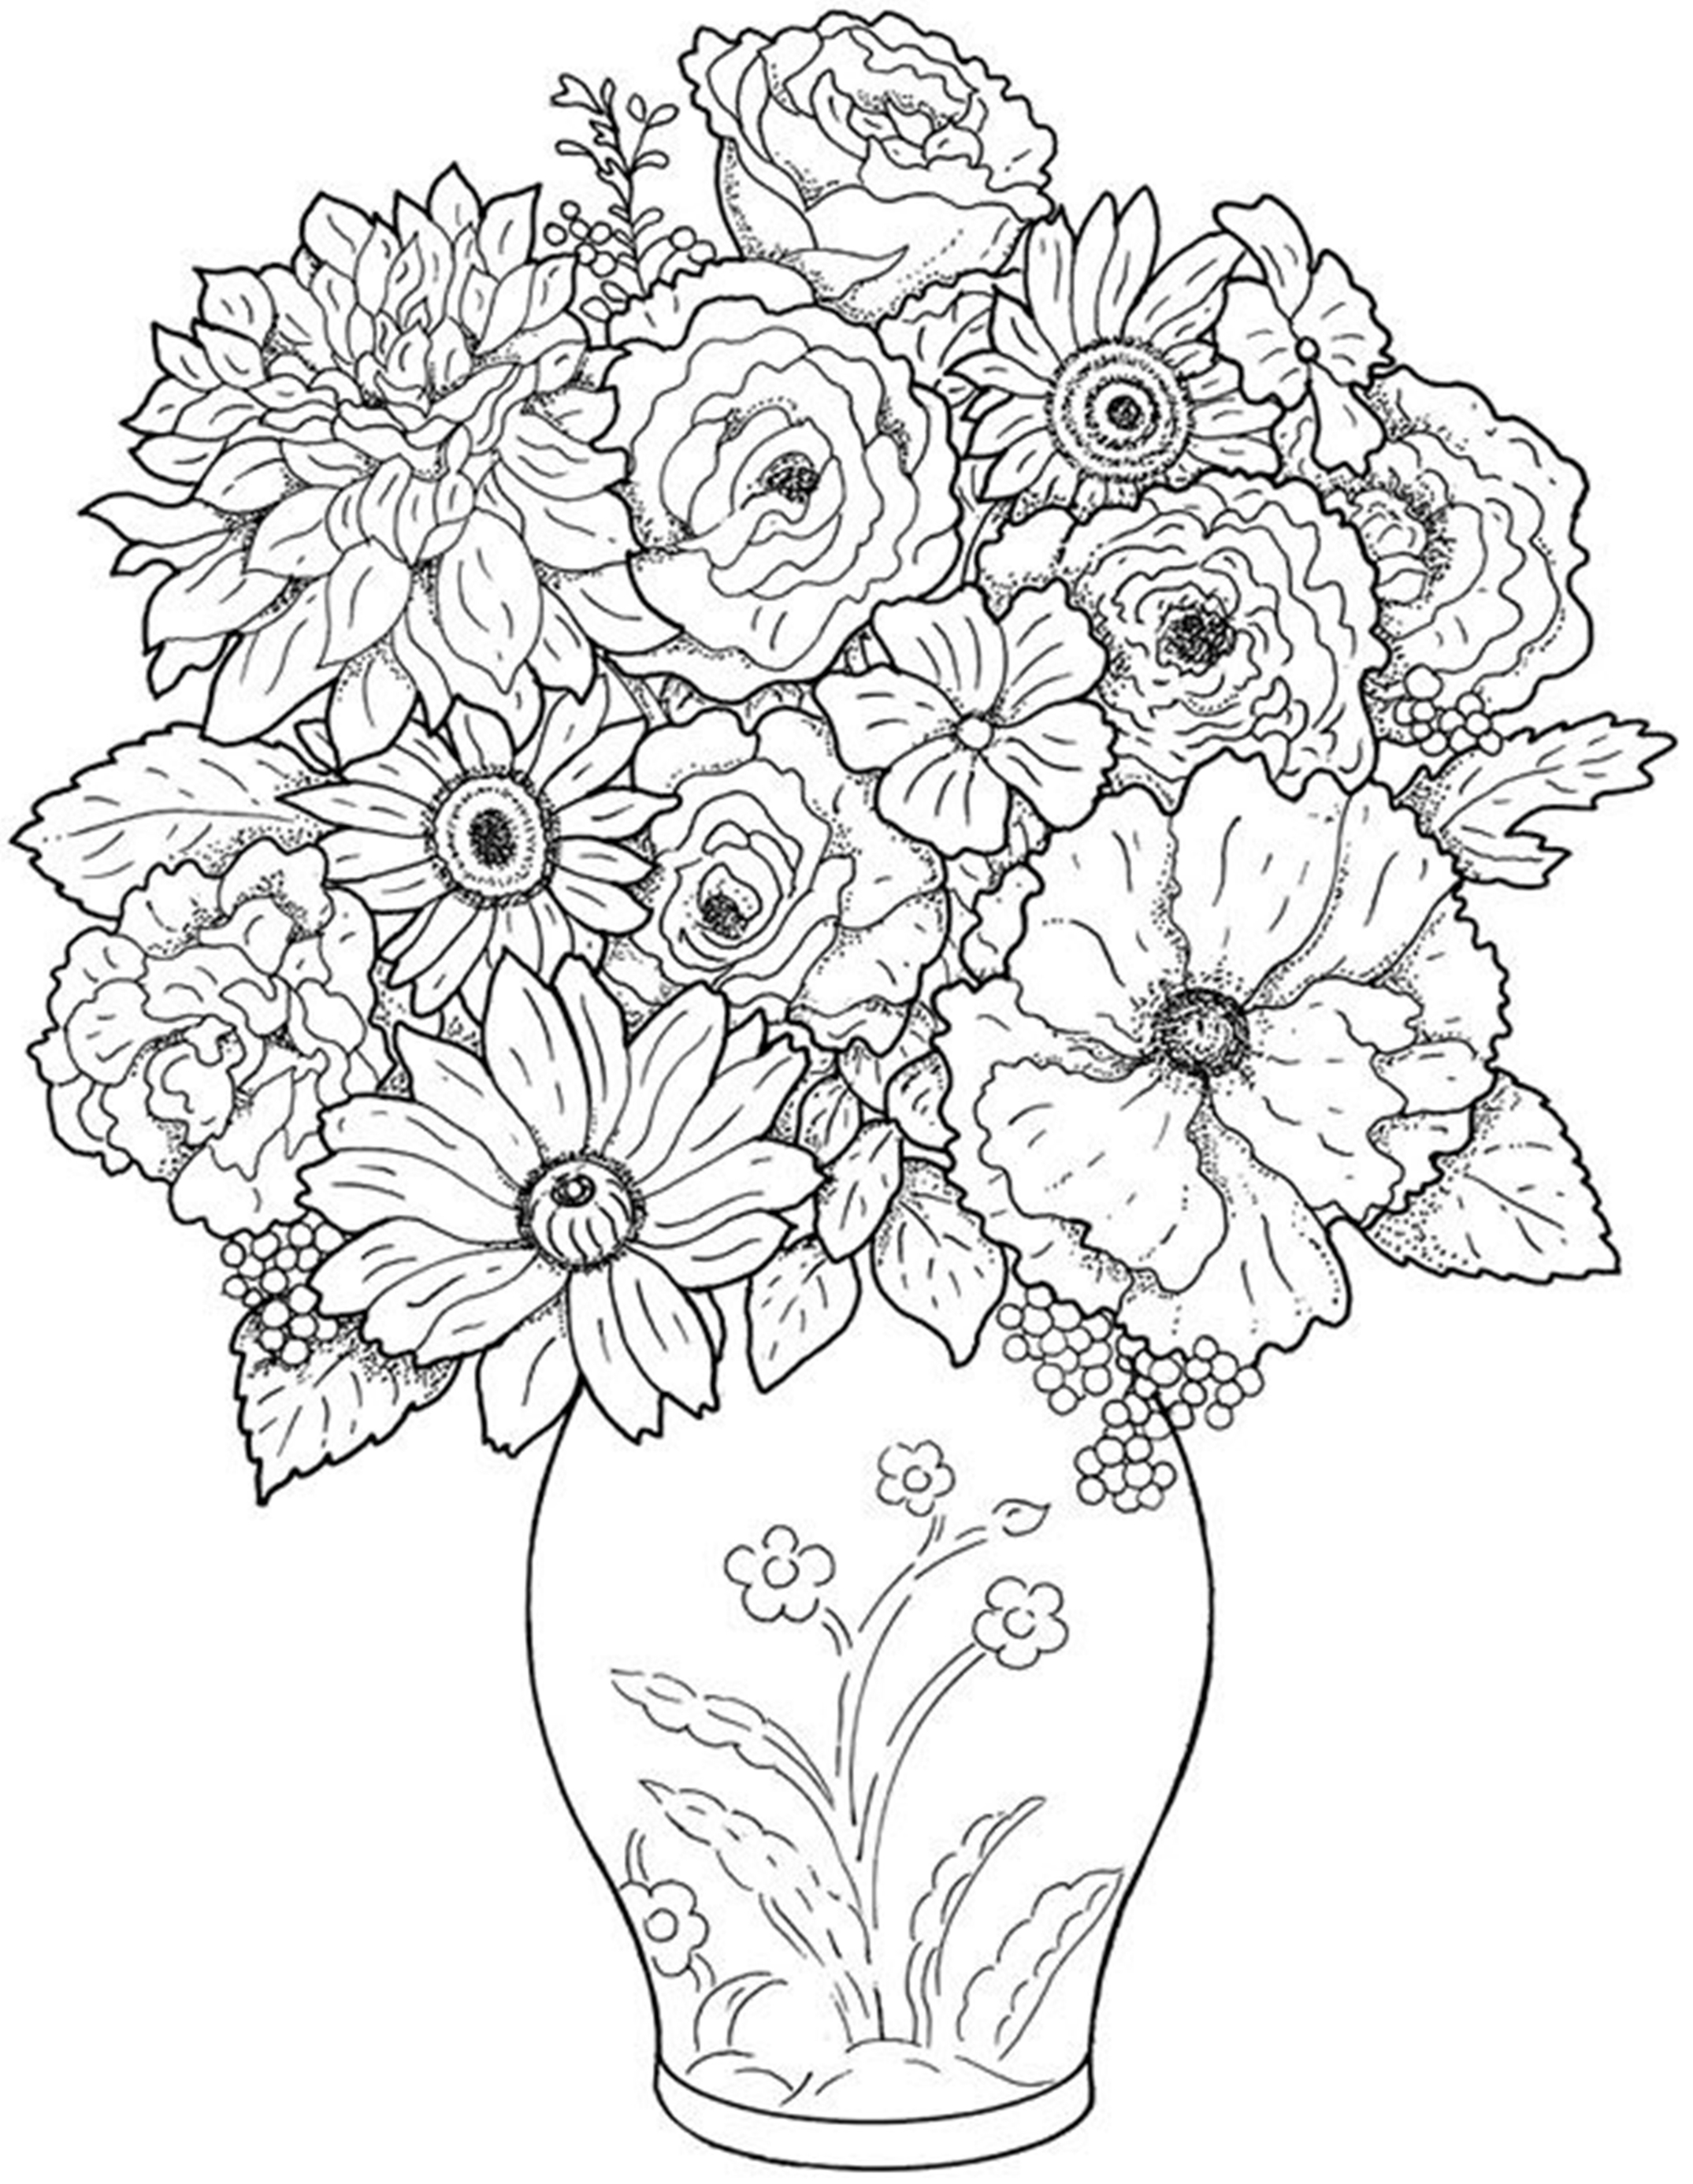 flower coloring pages printables free printable flower coloring pages for kids cool2bkids flower coloring printables pages